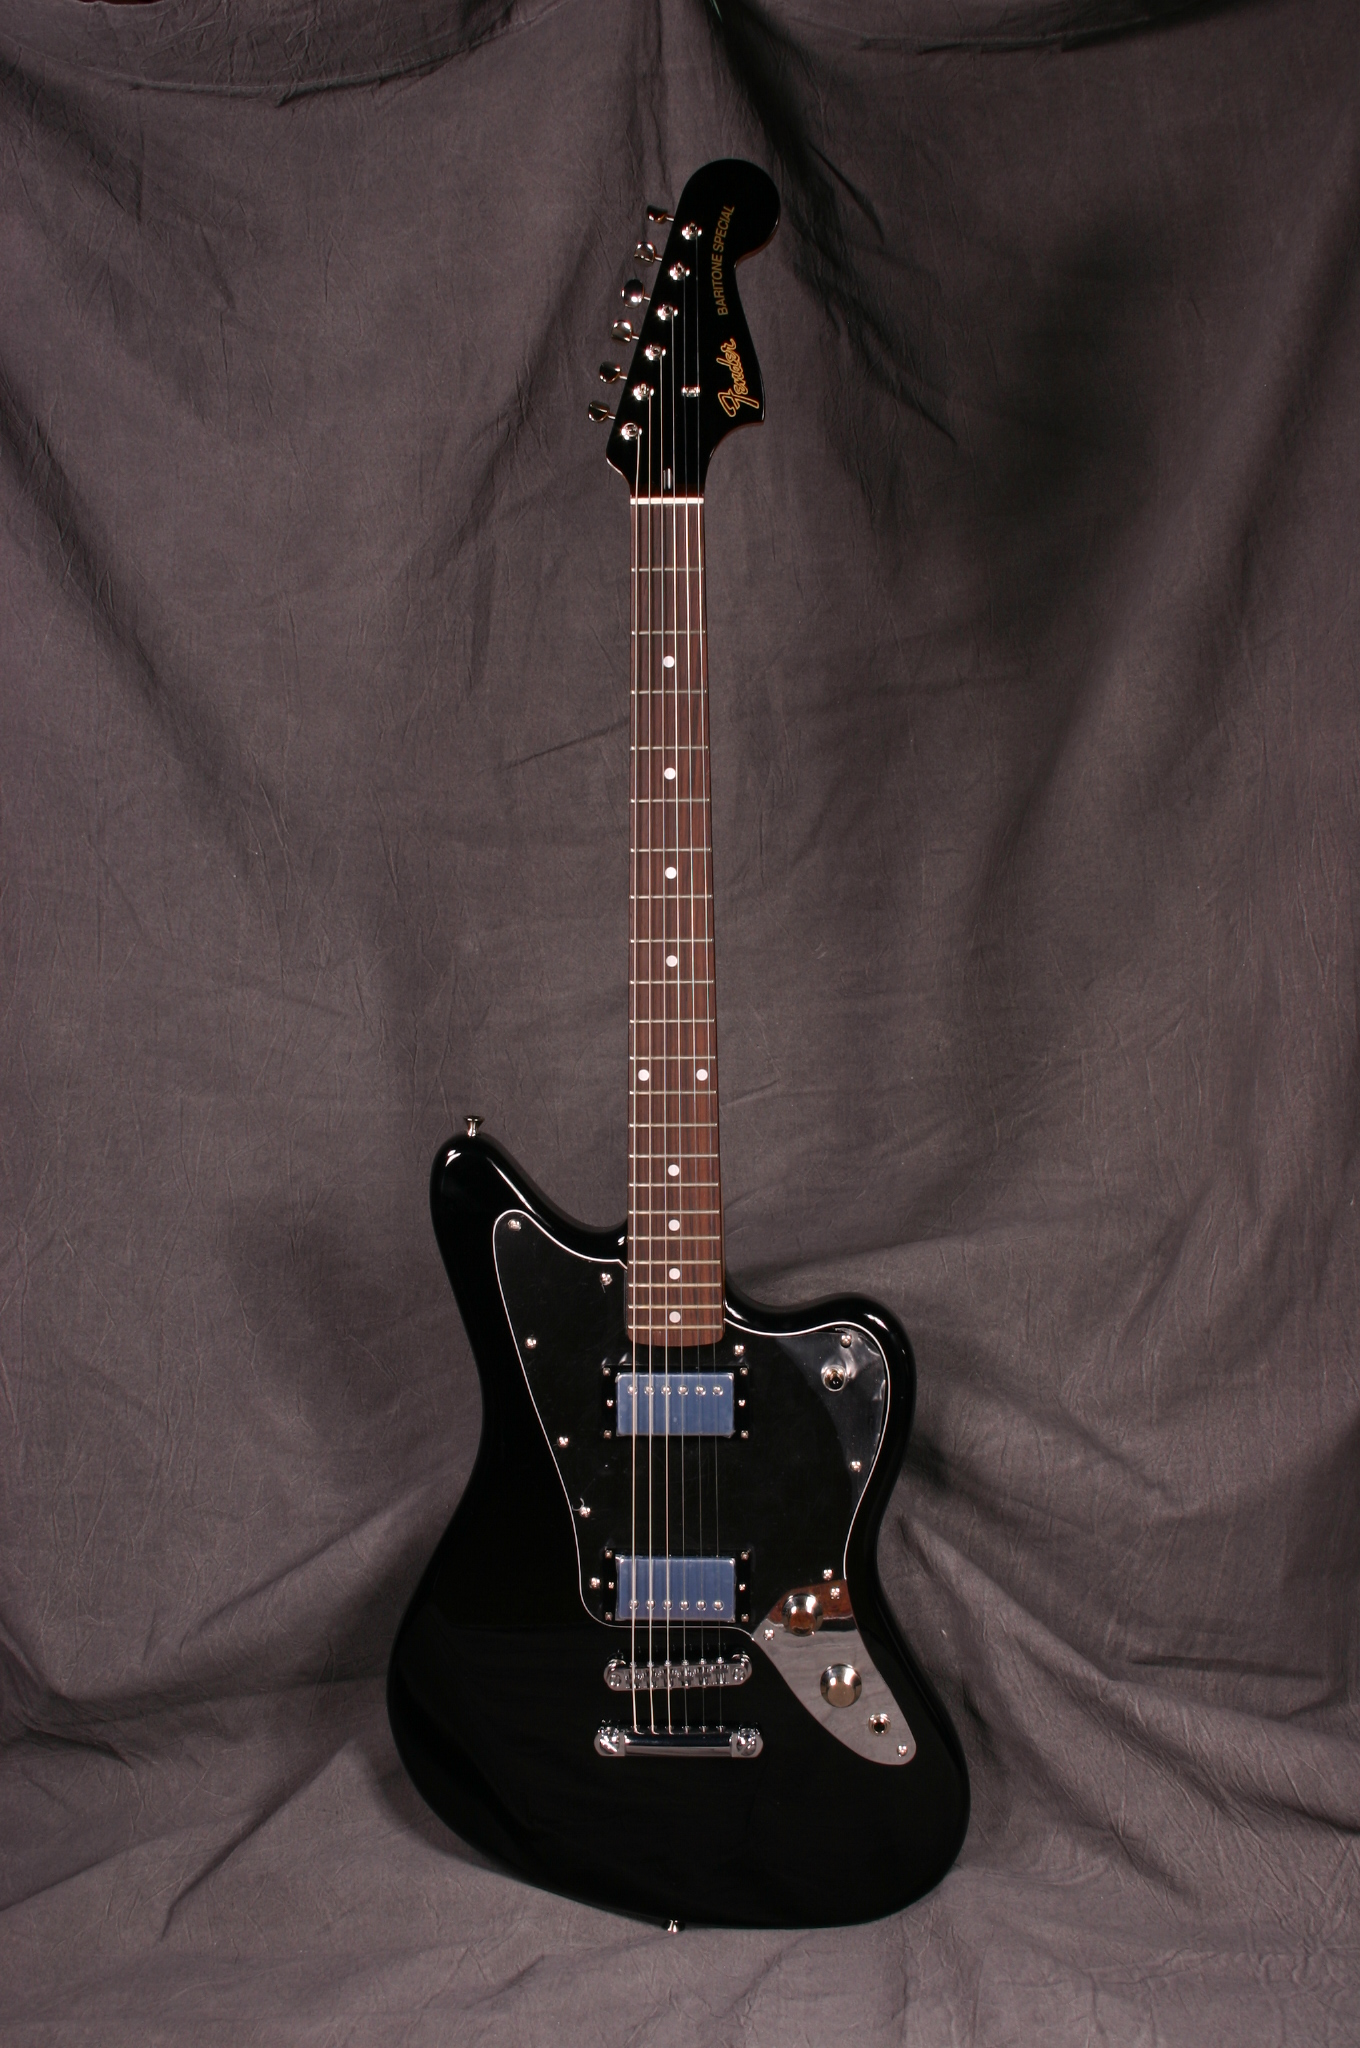 fender jaguar hh special edition electric guitar (black and chrome)